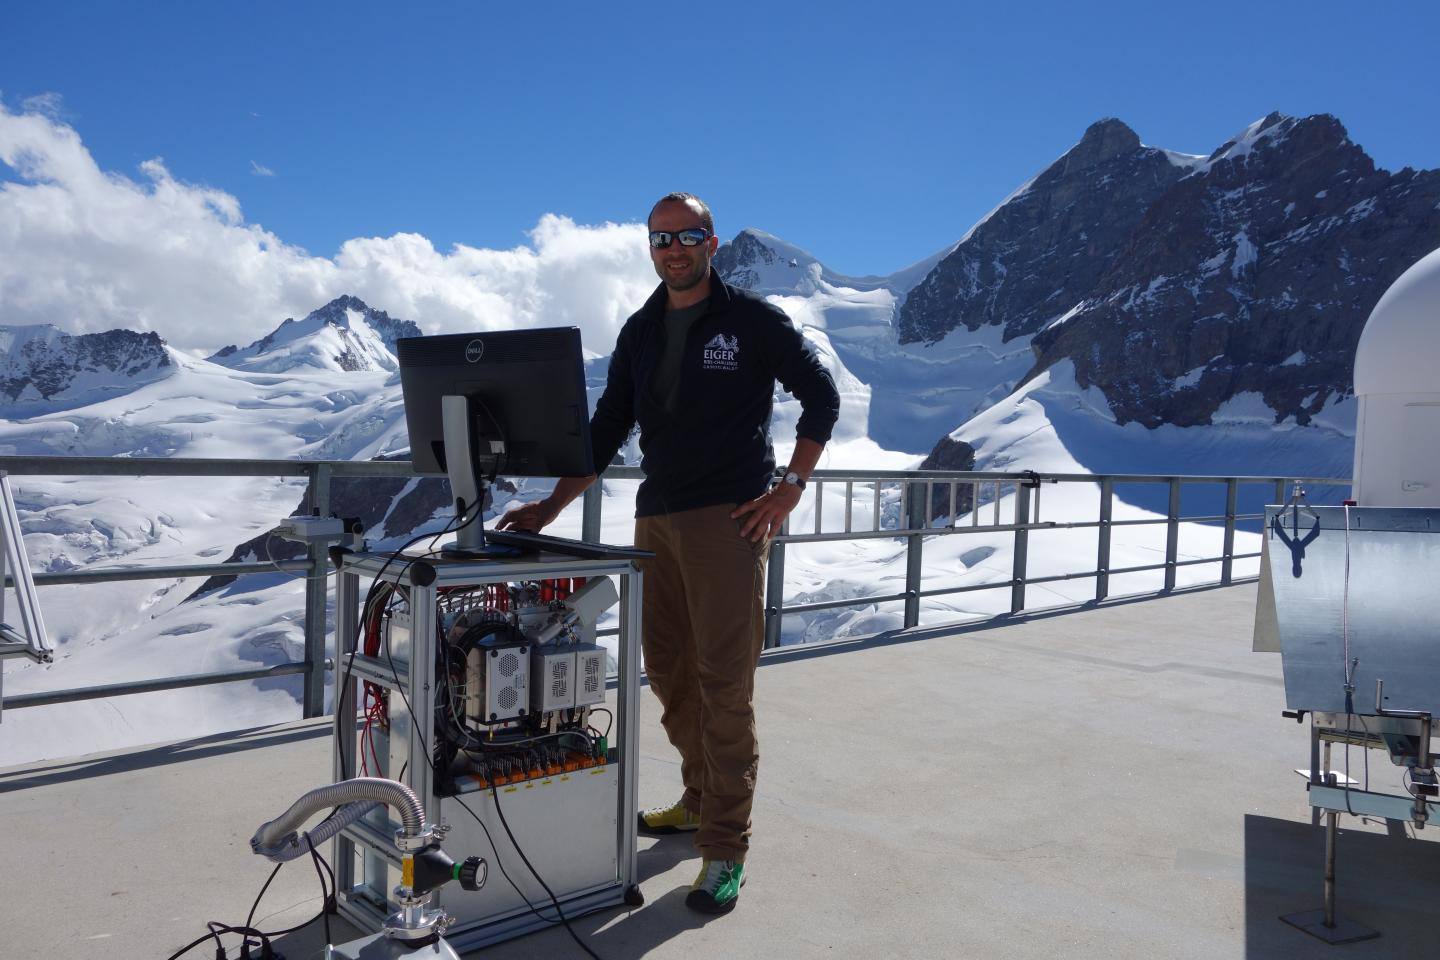 From Jungfraujoch Station: How New Atmospheric Aerosols Form (1 of 2)